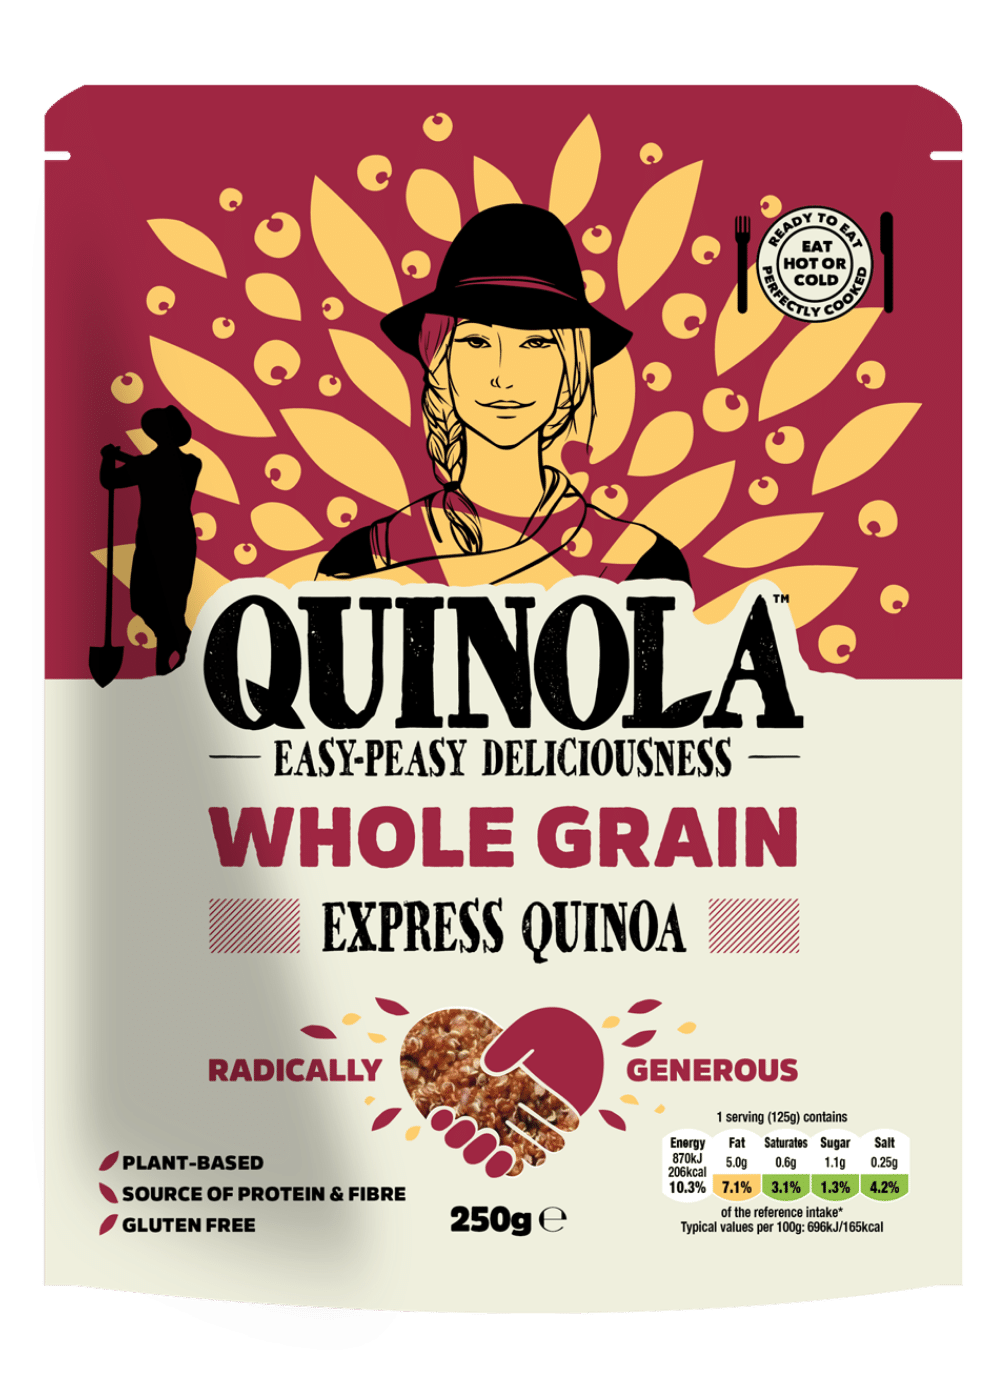 Whole Grain quinoa pouch